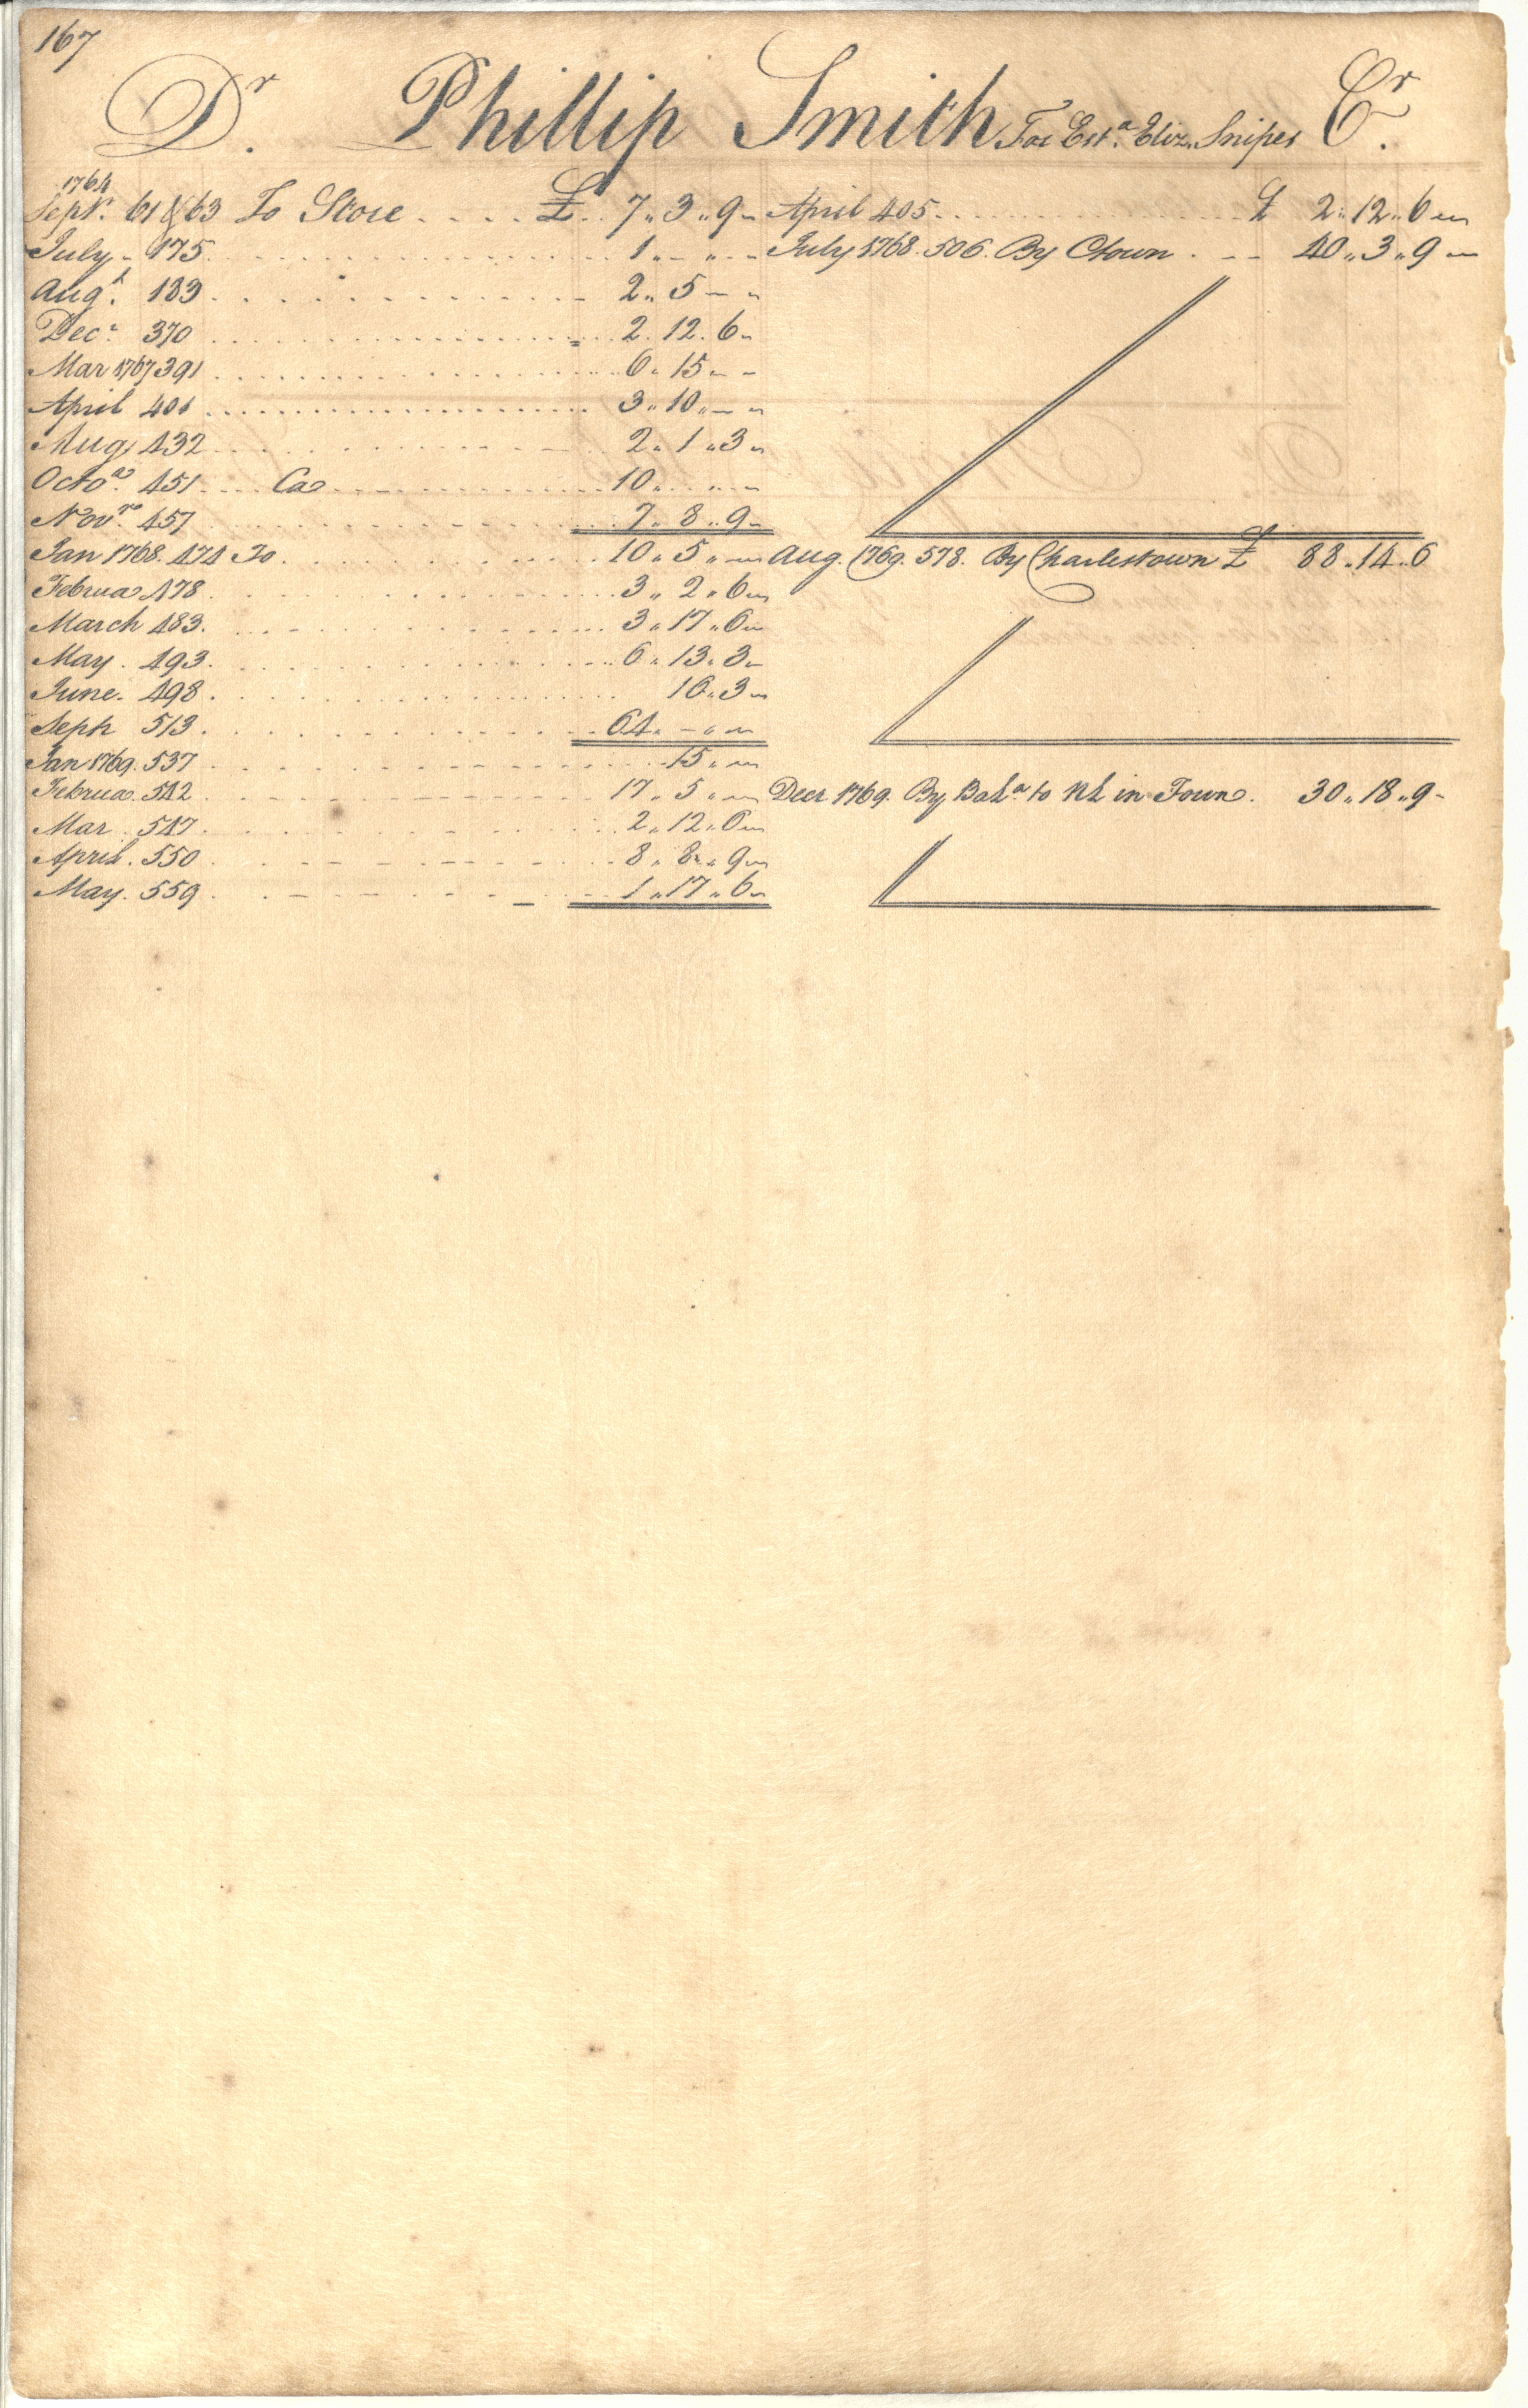 Plowden Weston's Business Ledger, page 167